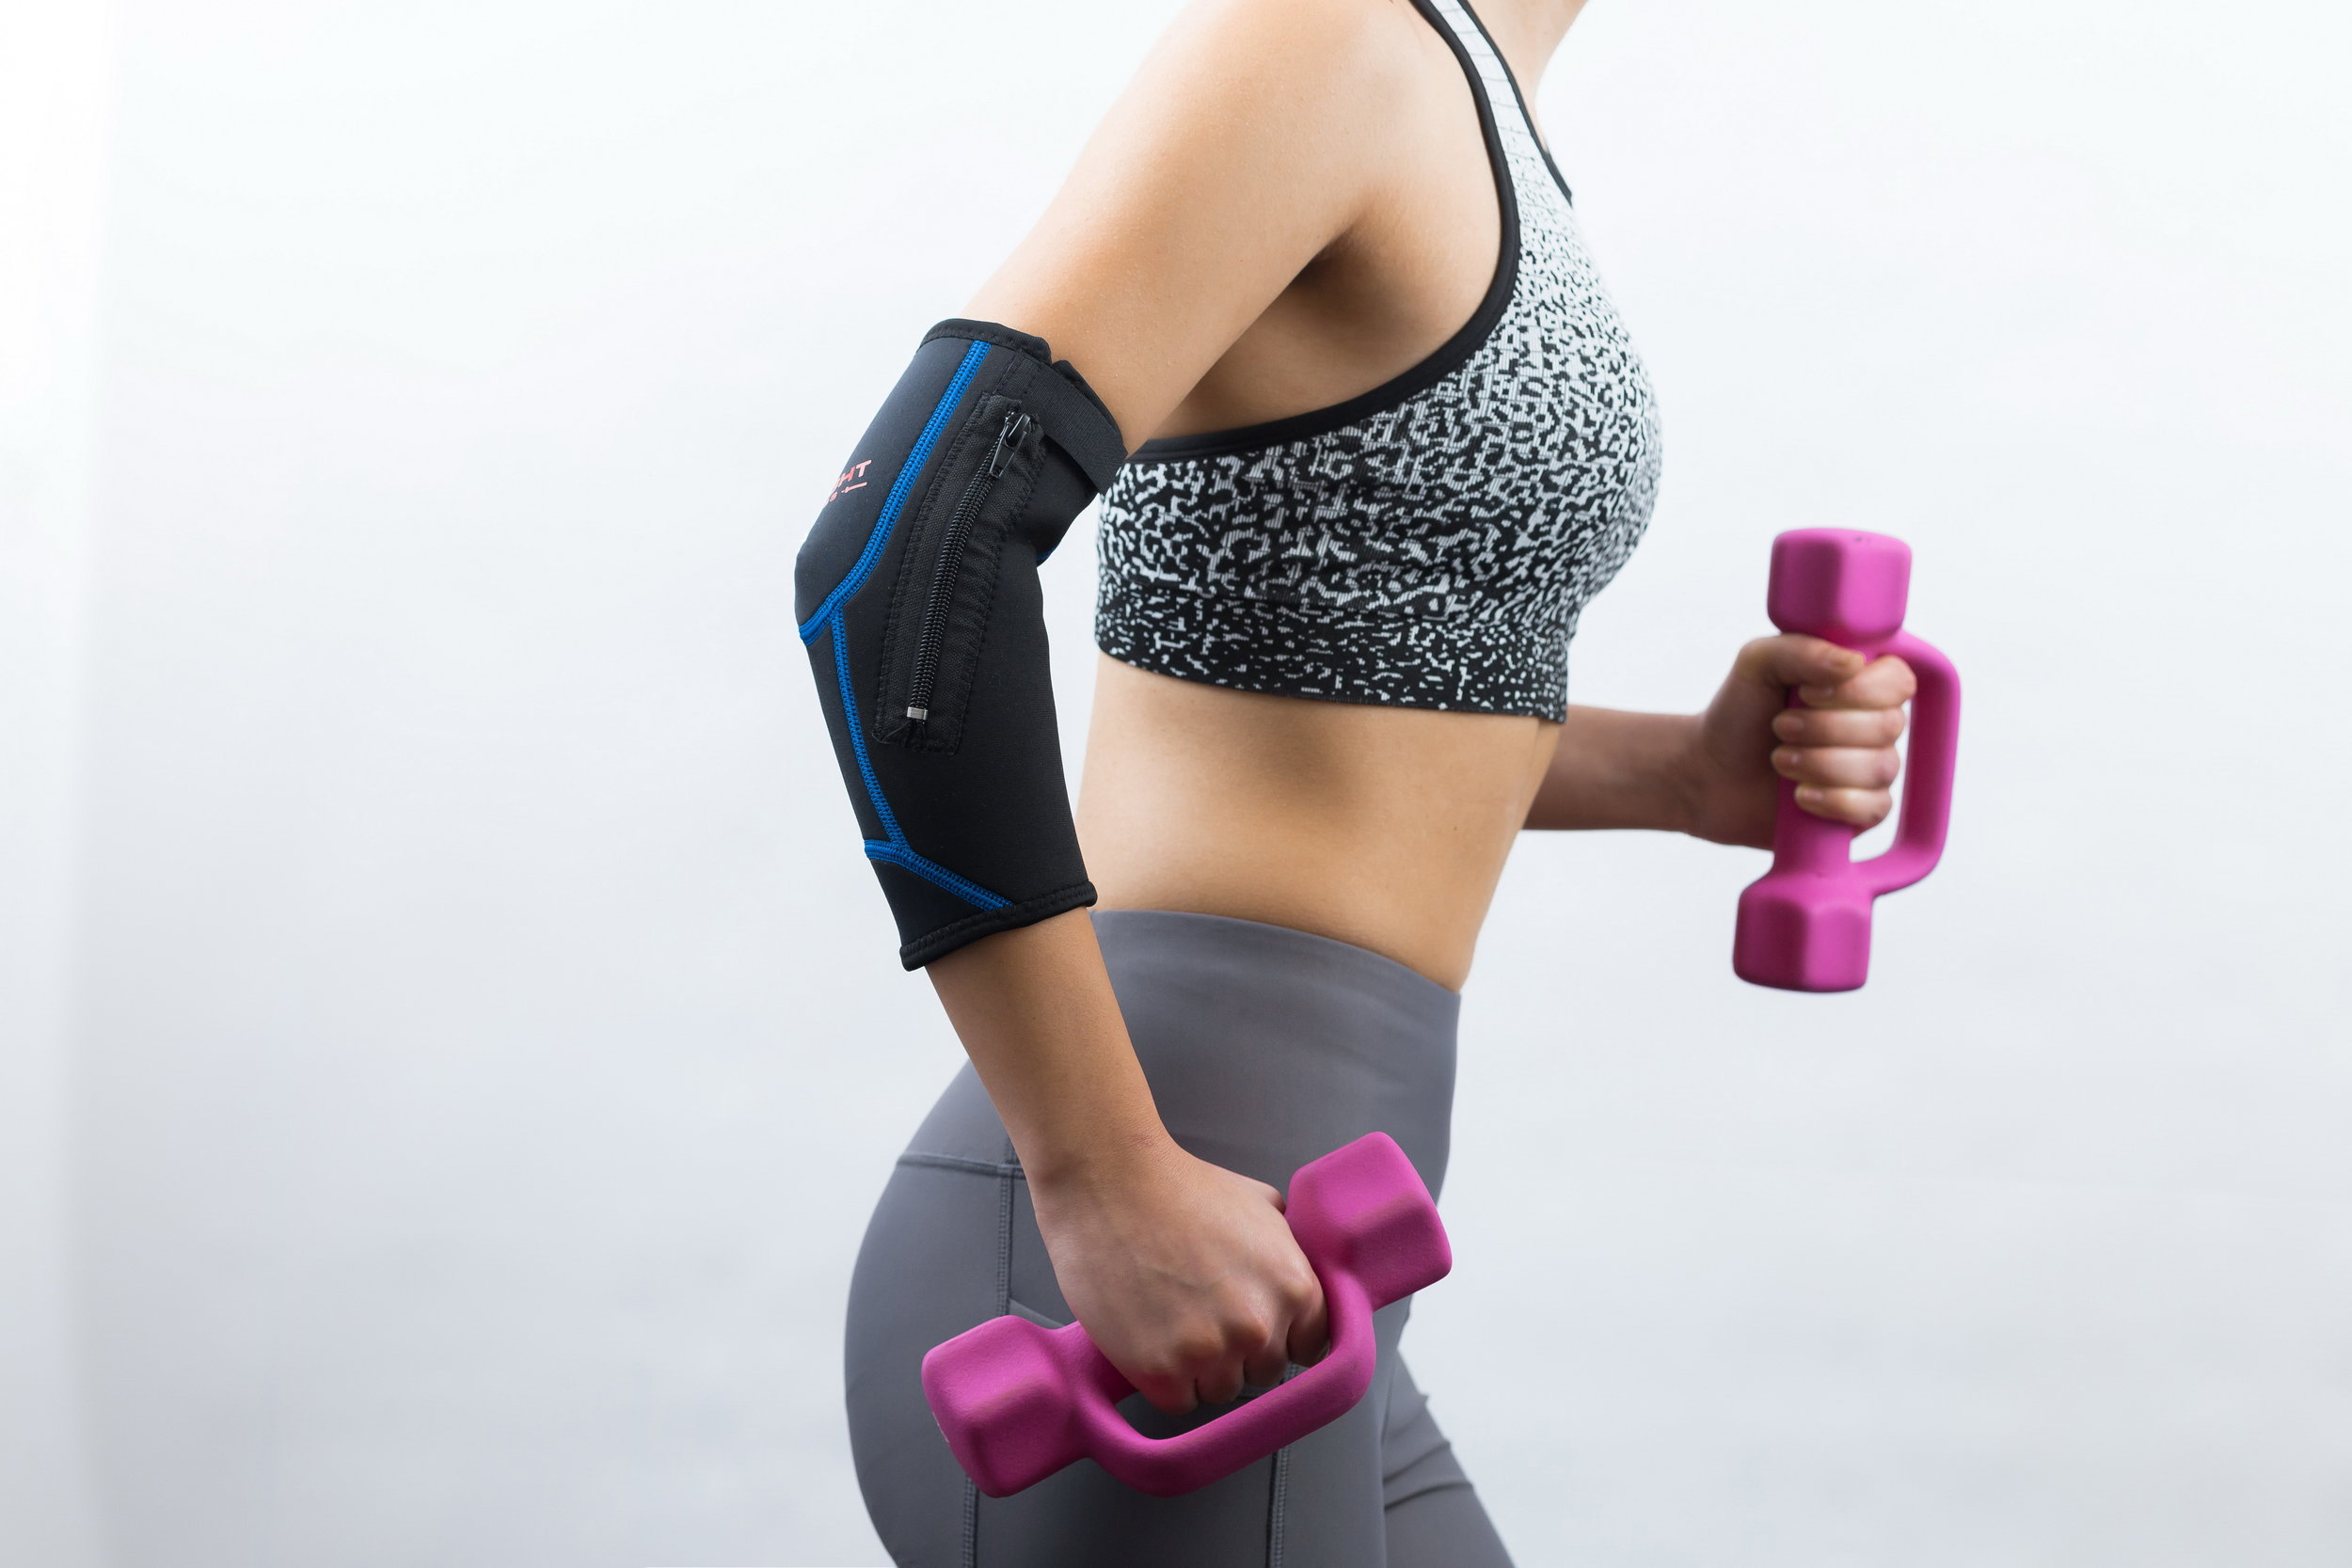 fitness-elbow-sleeve-product-photography-commercial-photographers-hampshire-southampton-london-Outright-10014.jpg